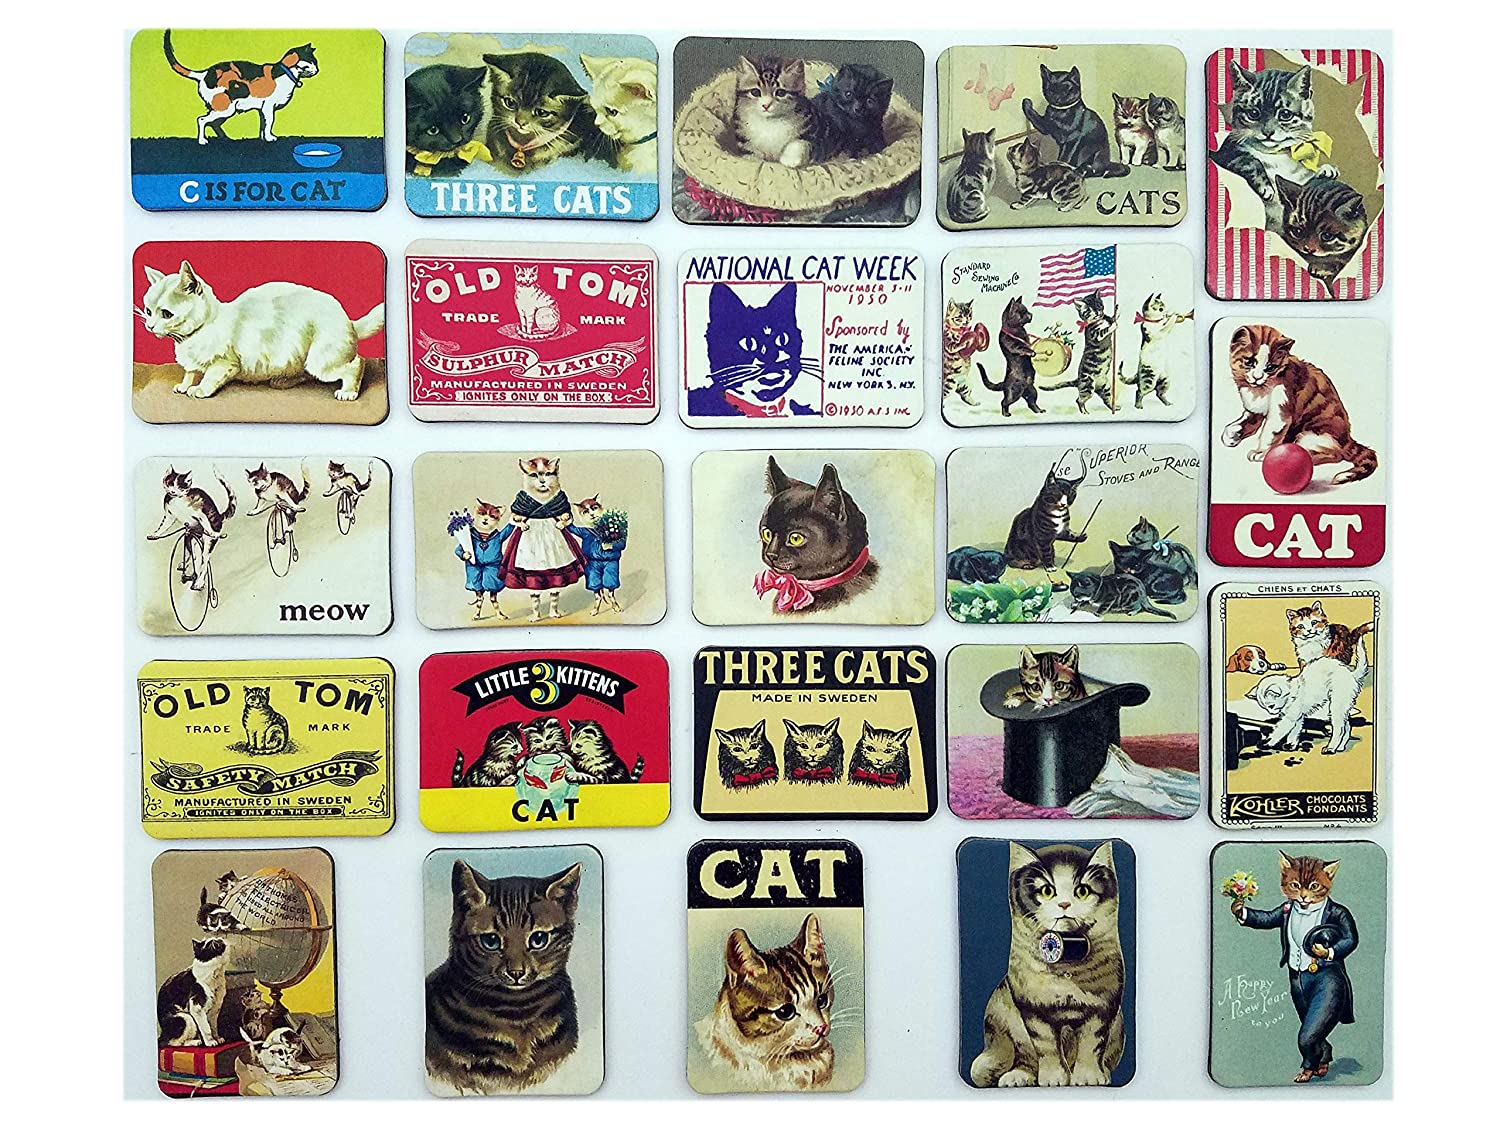 Cat Fridge Magnets Refrigerator Magnet Magnetic Souvenirs Mini Small Vintage Retro for Stainless Steel Board Kitchen car Office Set of 24